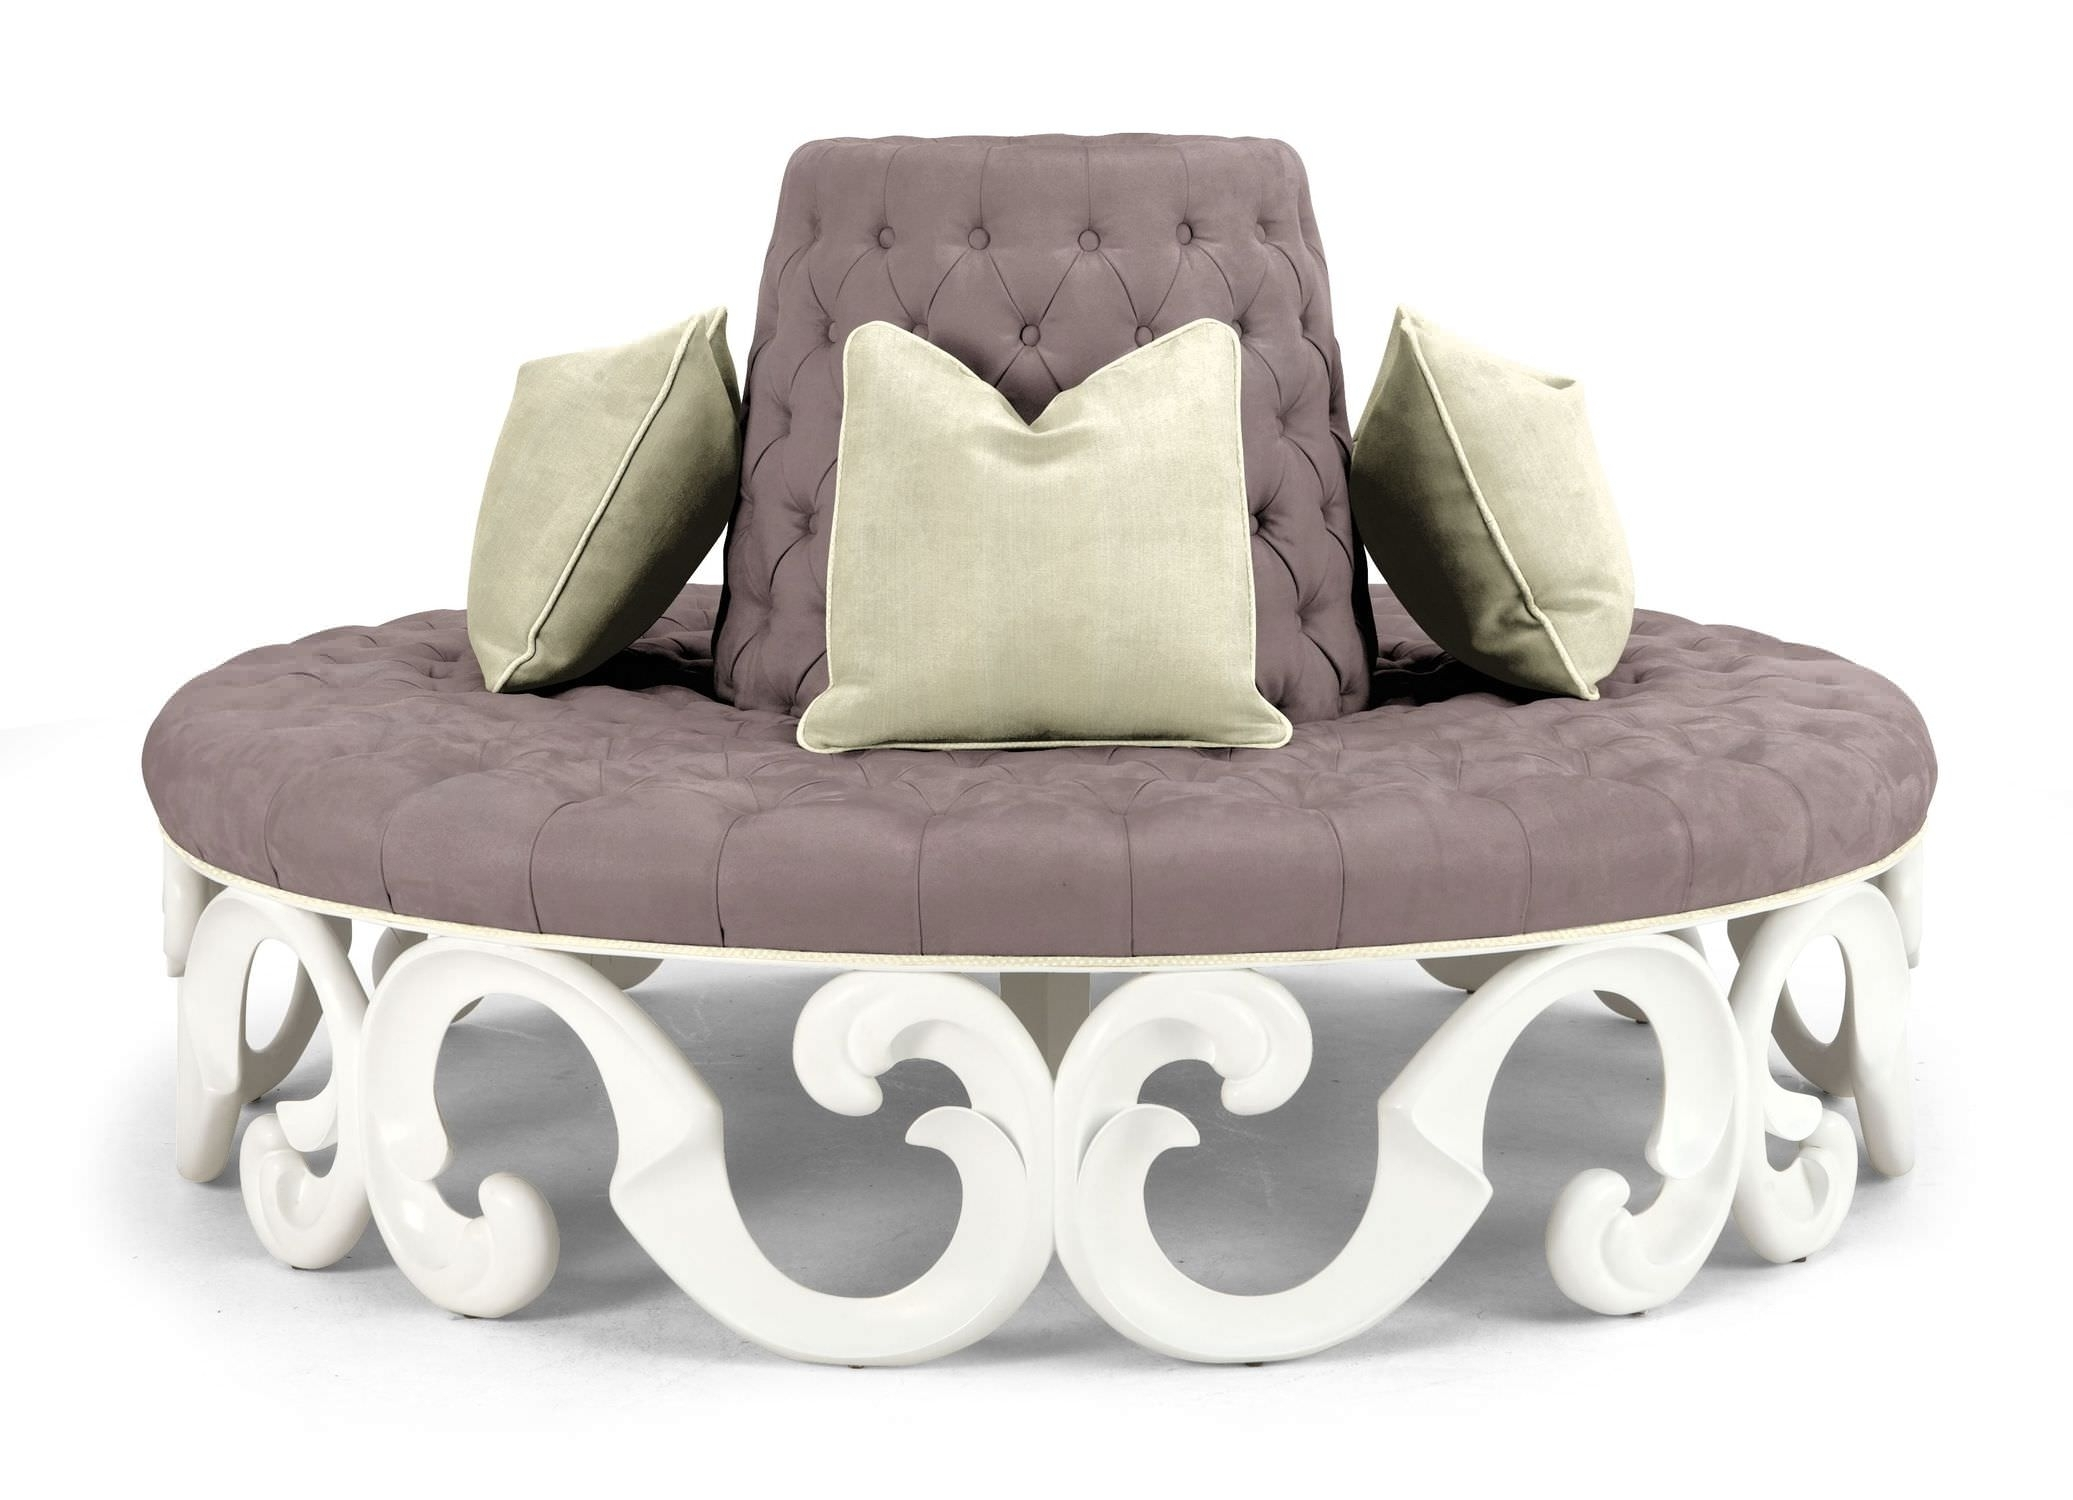 Awesome Oversized Round Outdoor Couch With Tufted Cushion And With Regard To Round Outdoor Cushion Diy Simple Round Outdoor Cushion